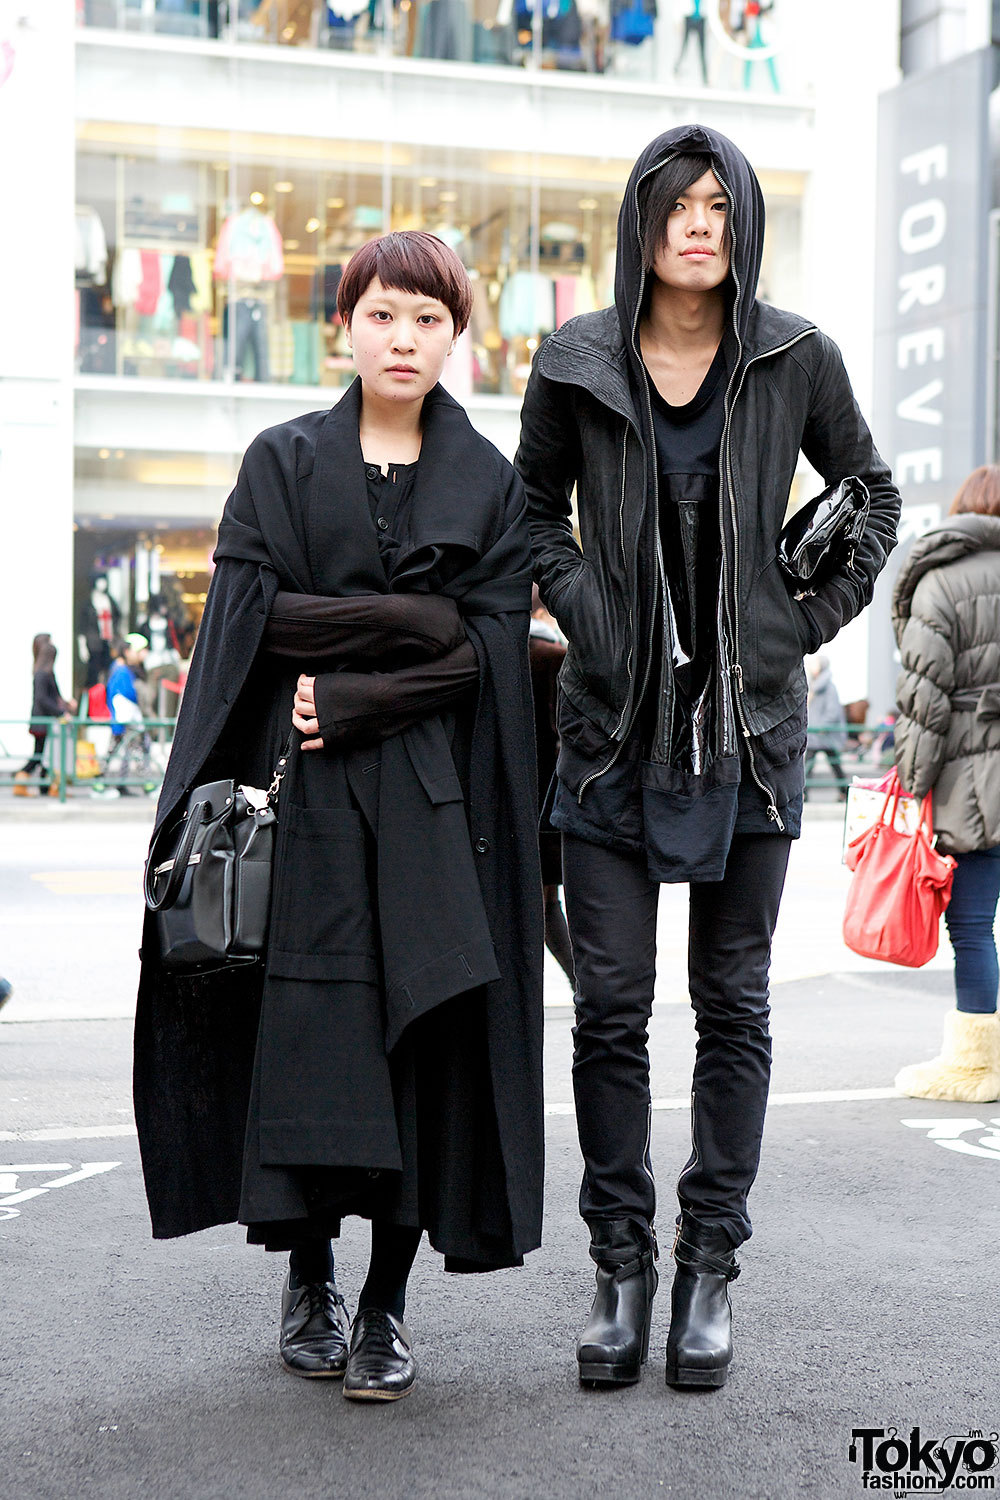 Cool all-black looks in Harajuku w/ Limi Feu, Monomania, Comme des Garcons & Rick Owens.